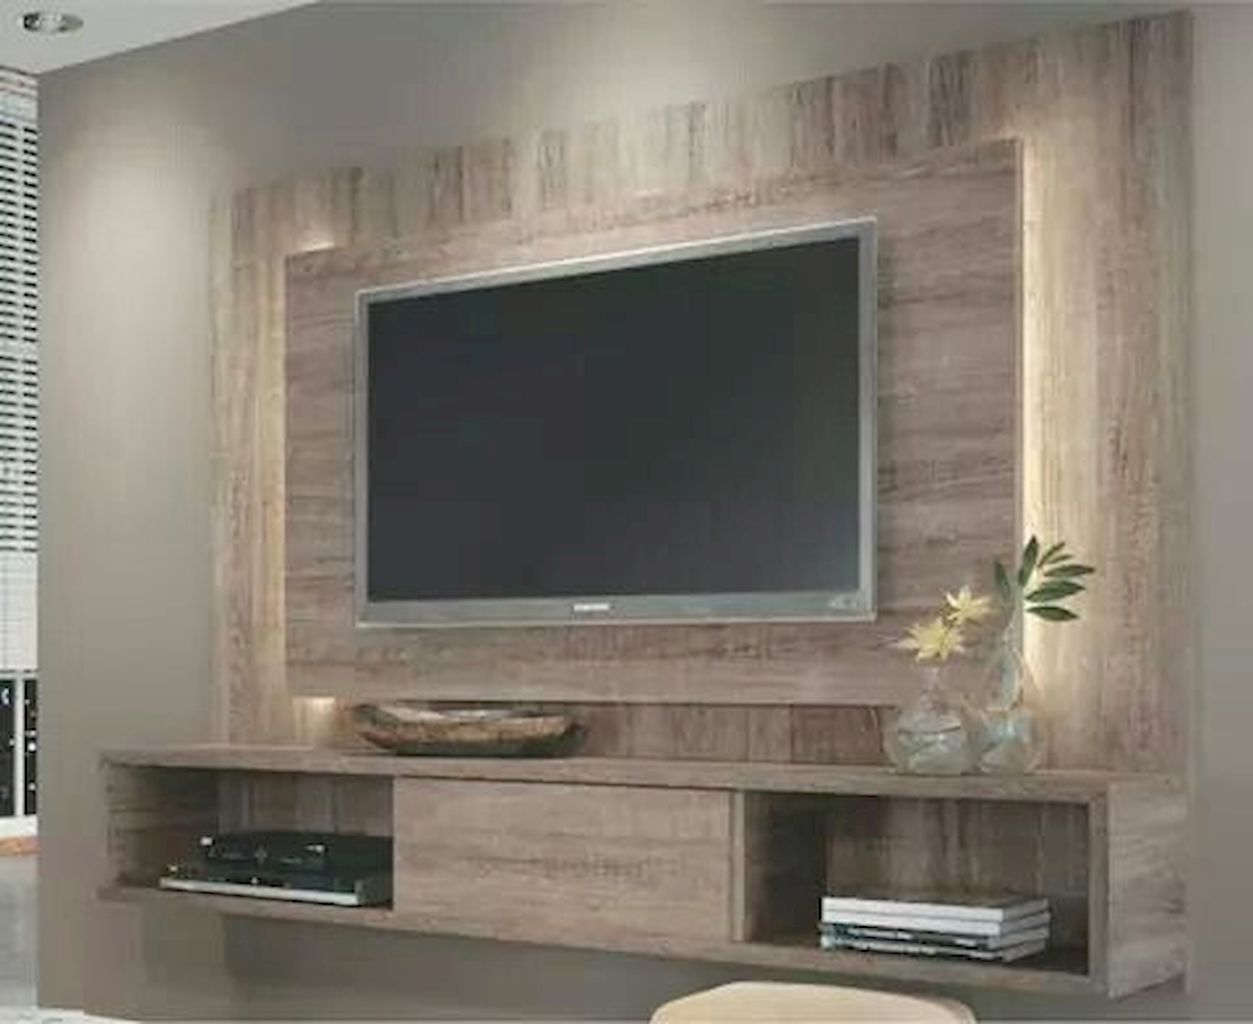 50 Amazing Living Room Designs With Floating Shelves Home To Z Living Room Tv Wall Small Apartment Modern Living Room Tv